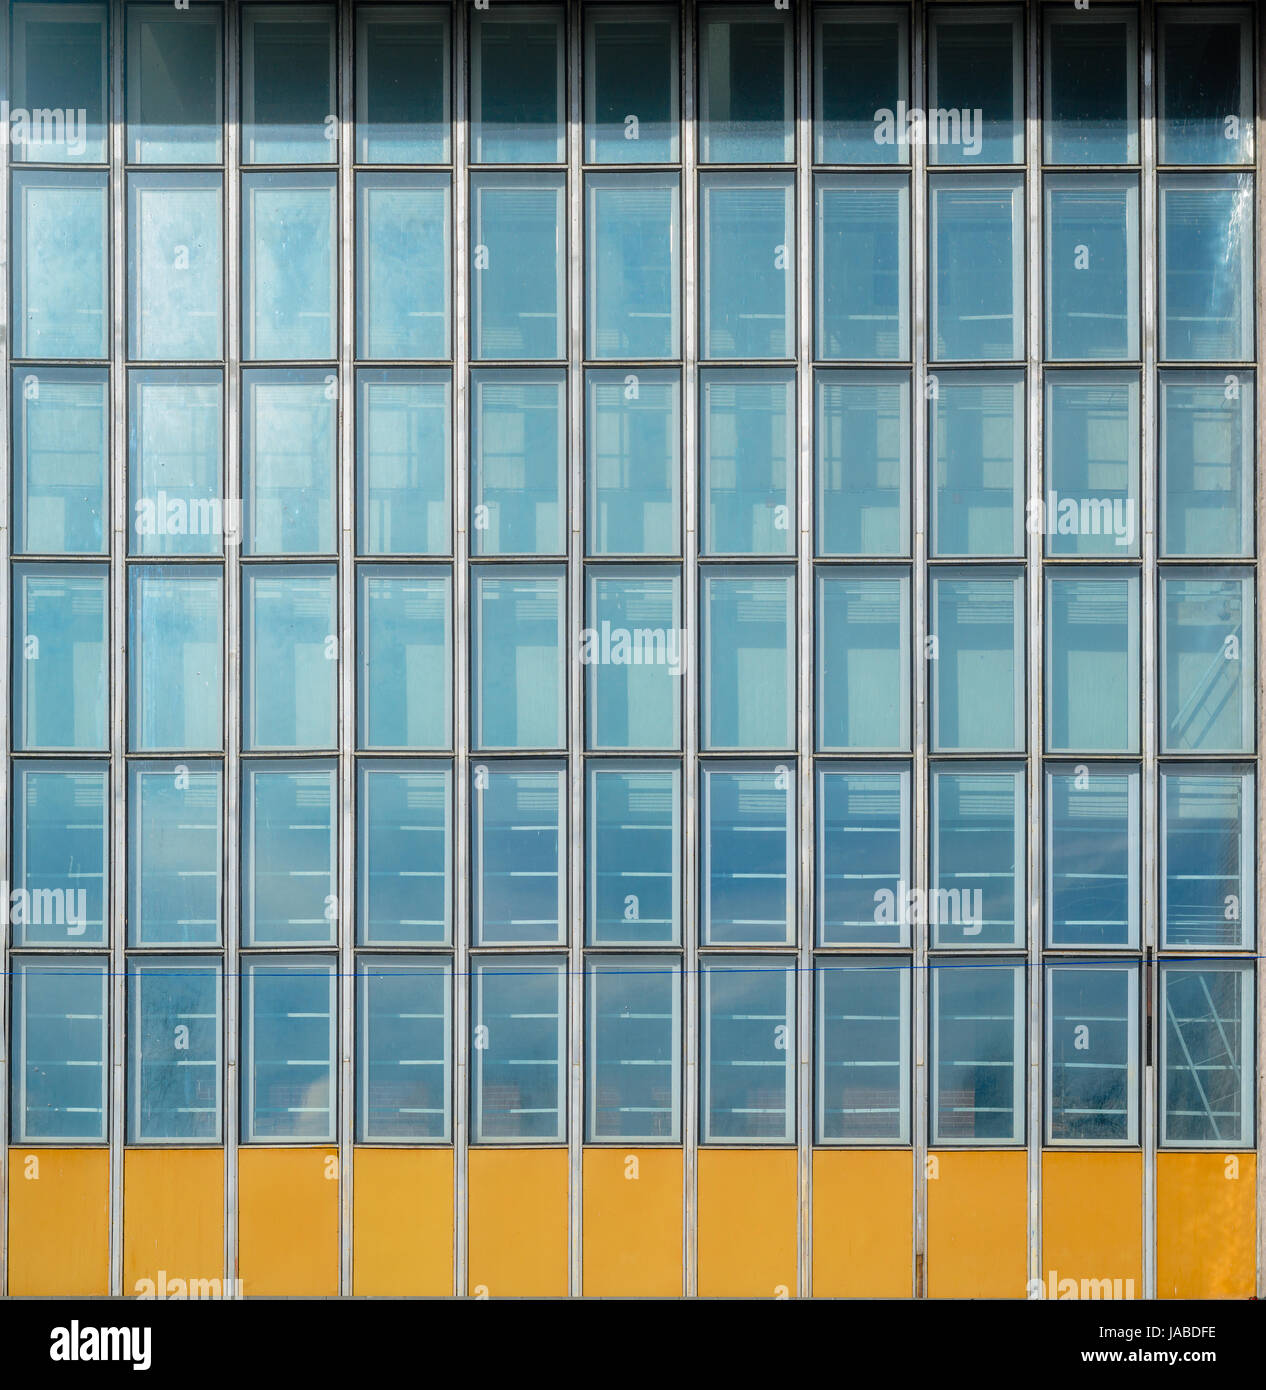 Architecture abstract background. Glass curtain wall texture. Stained-glass system based on outdated technology. Stock Photo